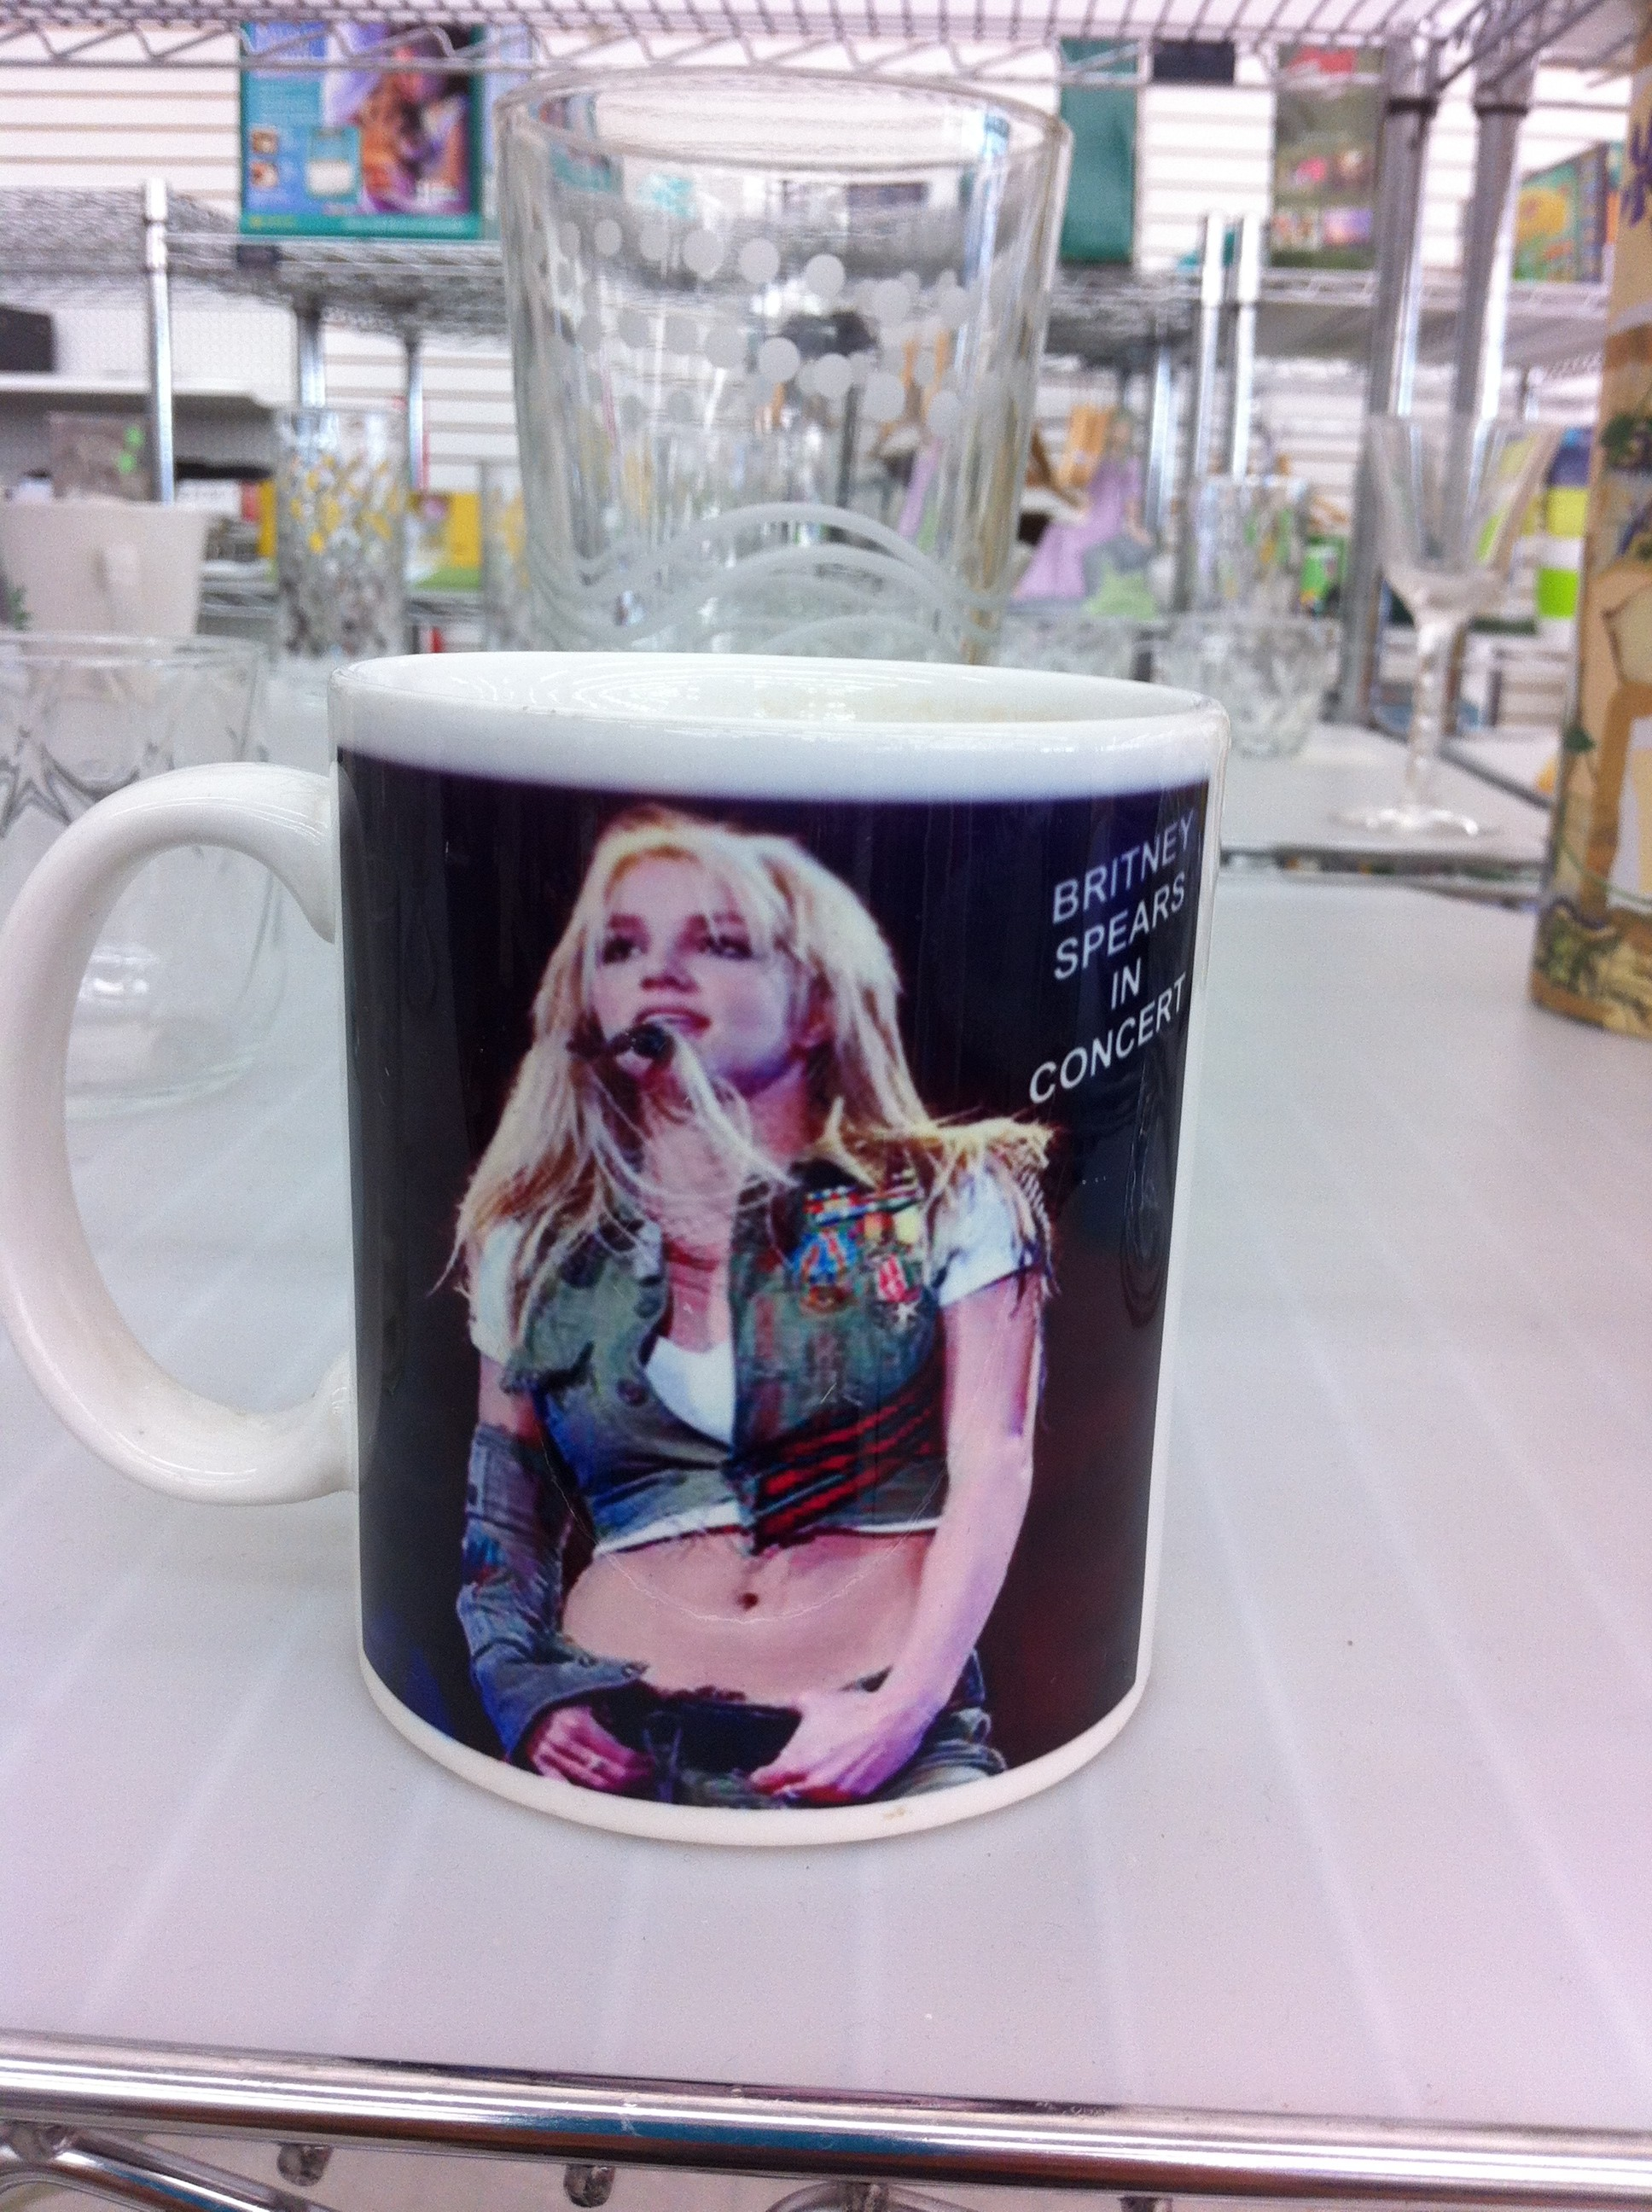 Another pic of Britney Spears on the reverse side of the same mug